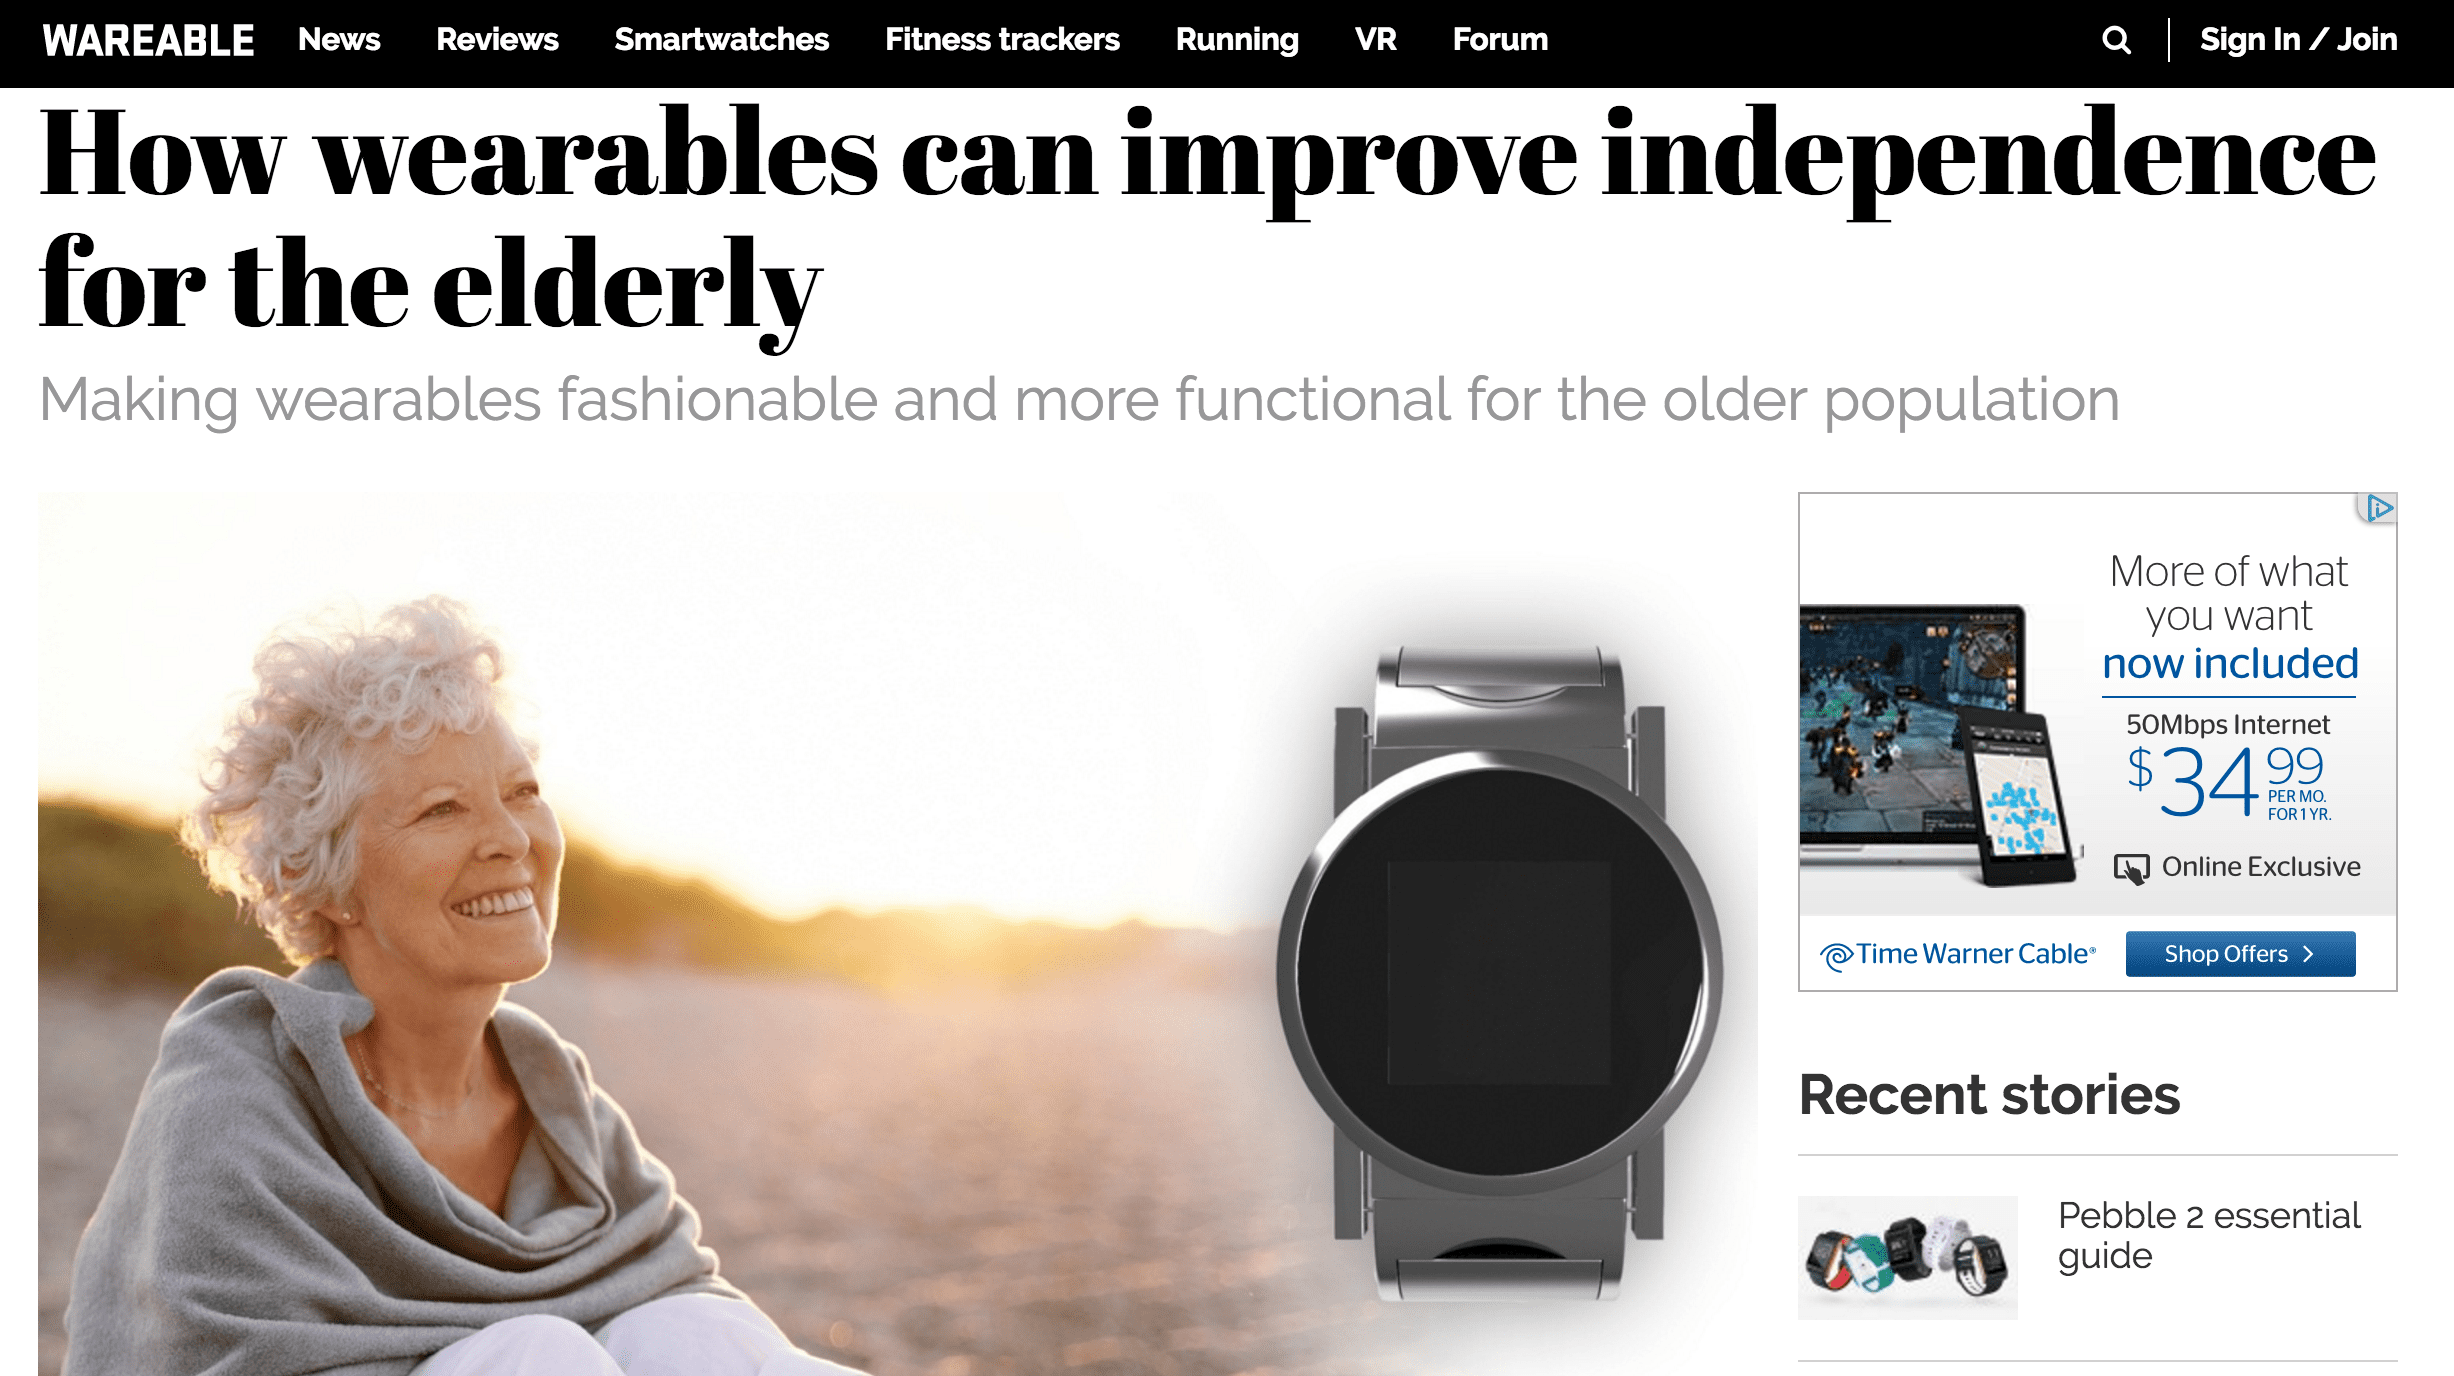 Making wearables fashionable and more functional for the older population